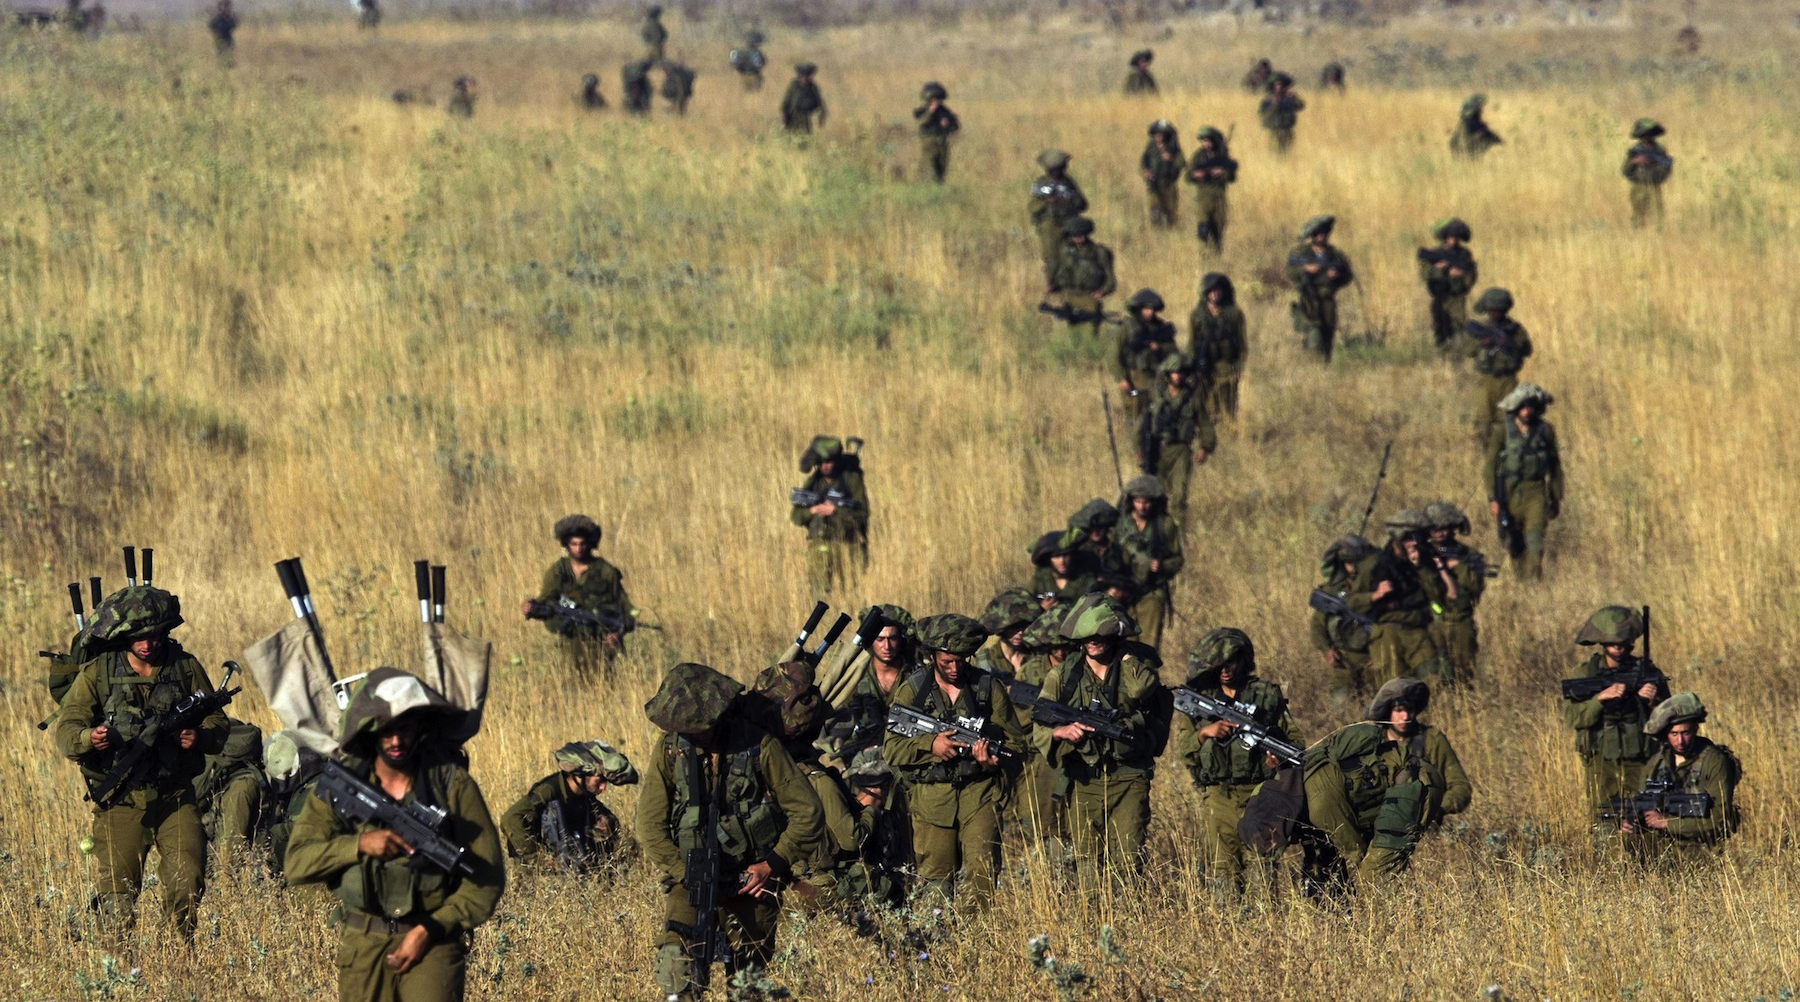 IDF soldiers in the Golan Heights